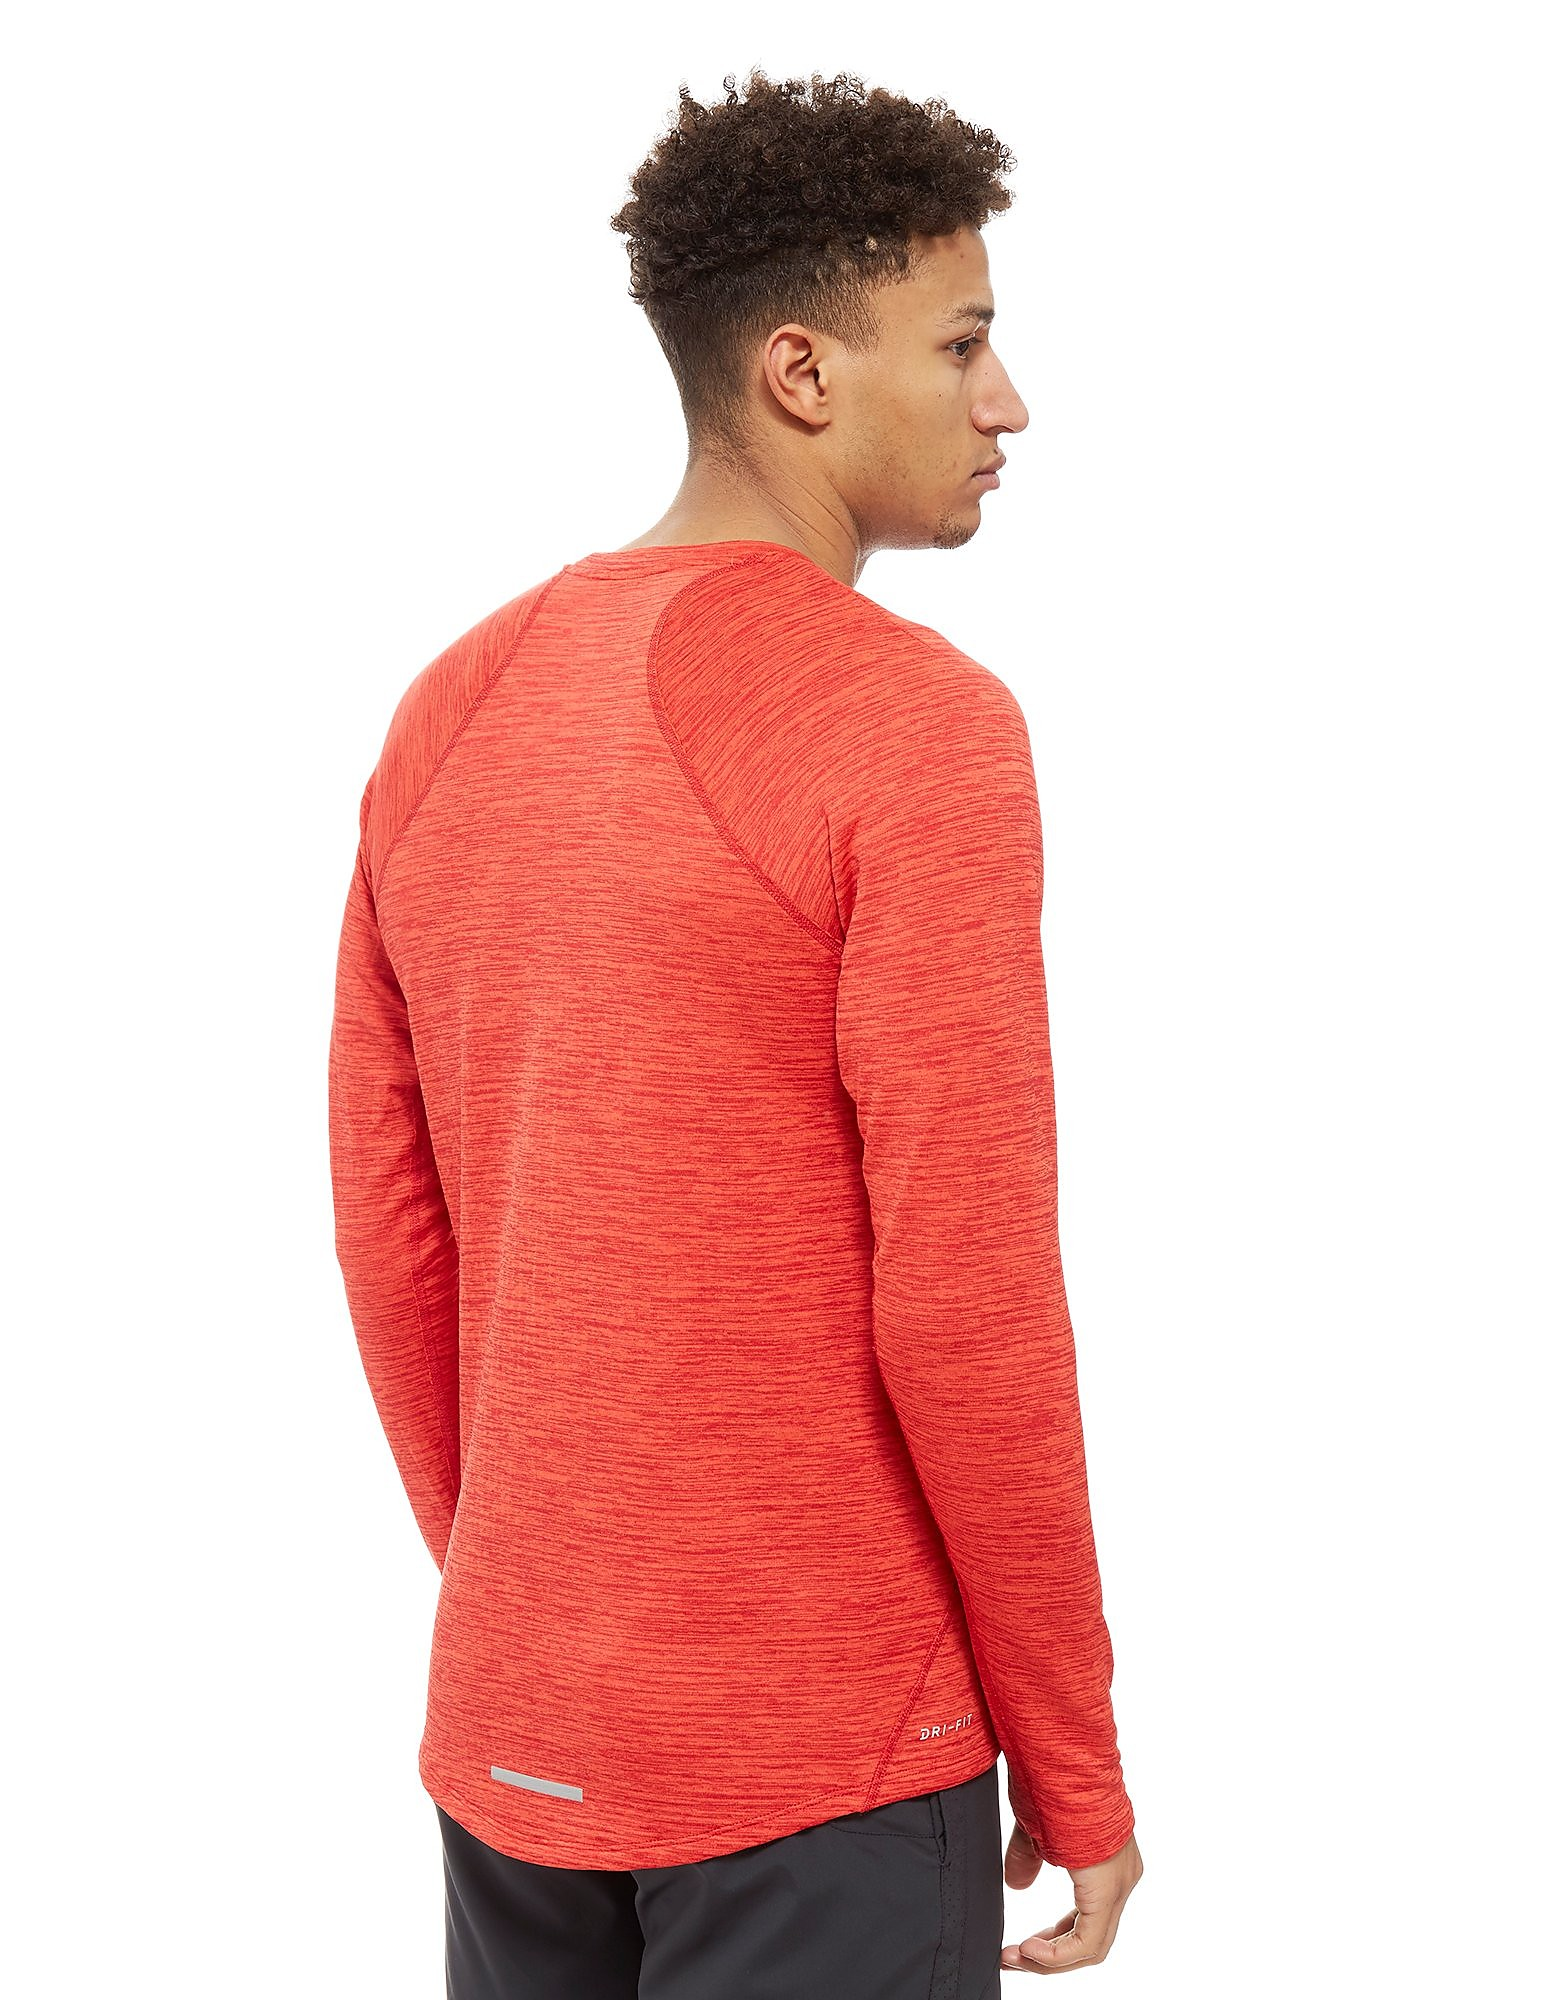 Nike Thermal Sphere Crew Men's Running Top